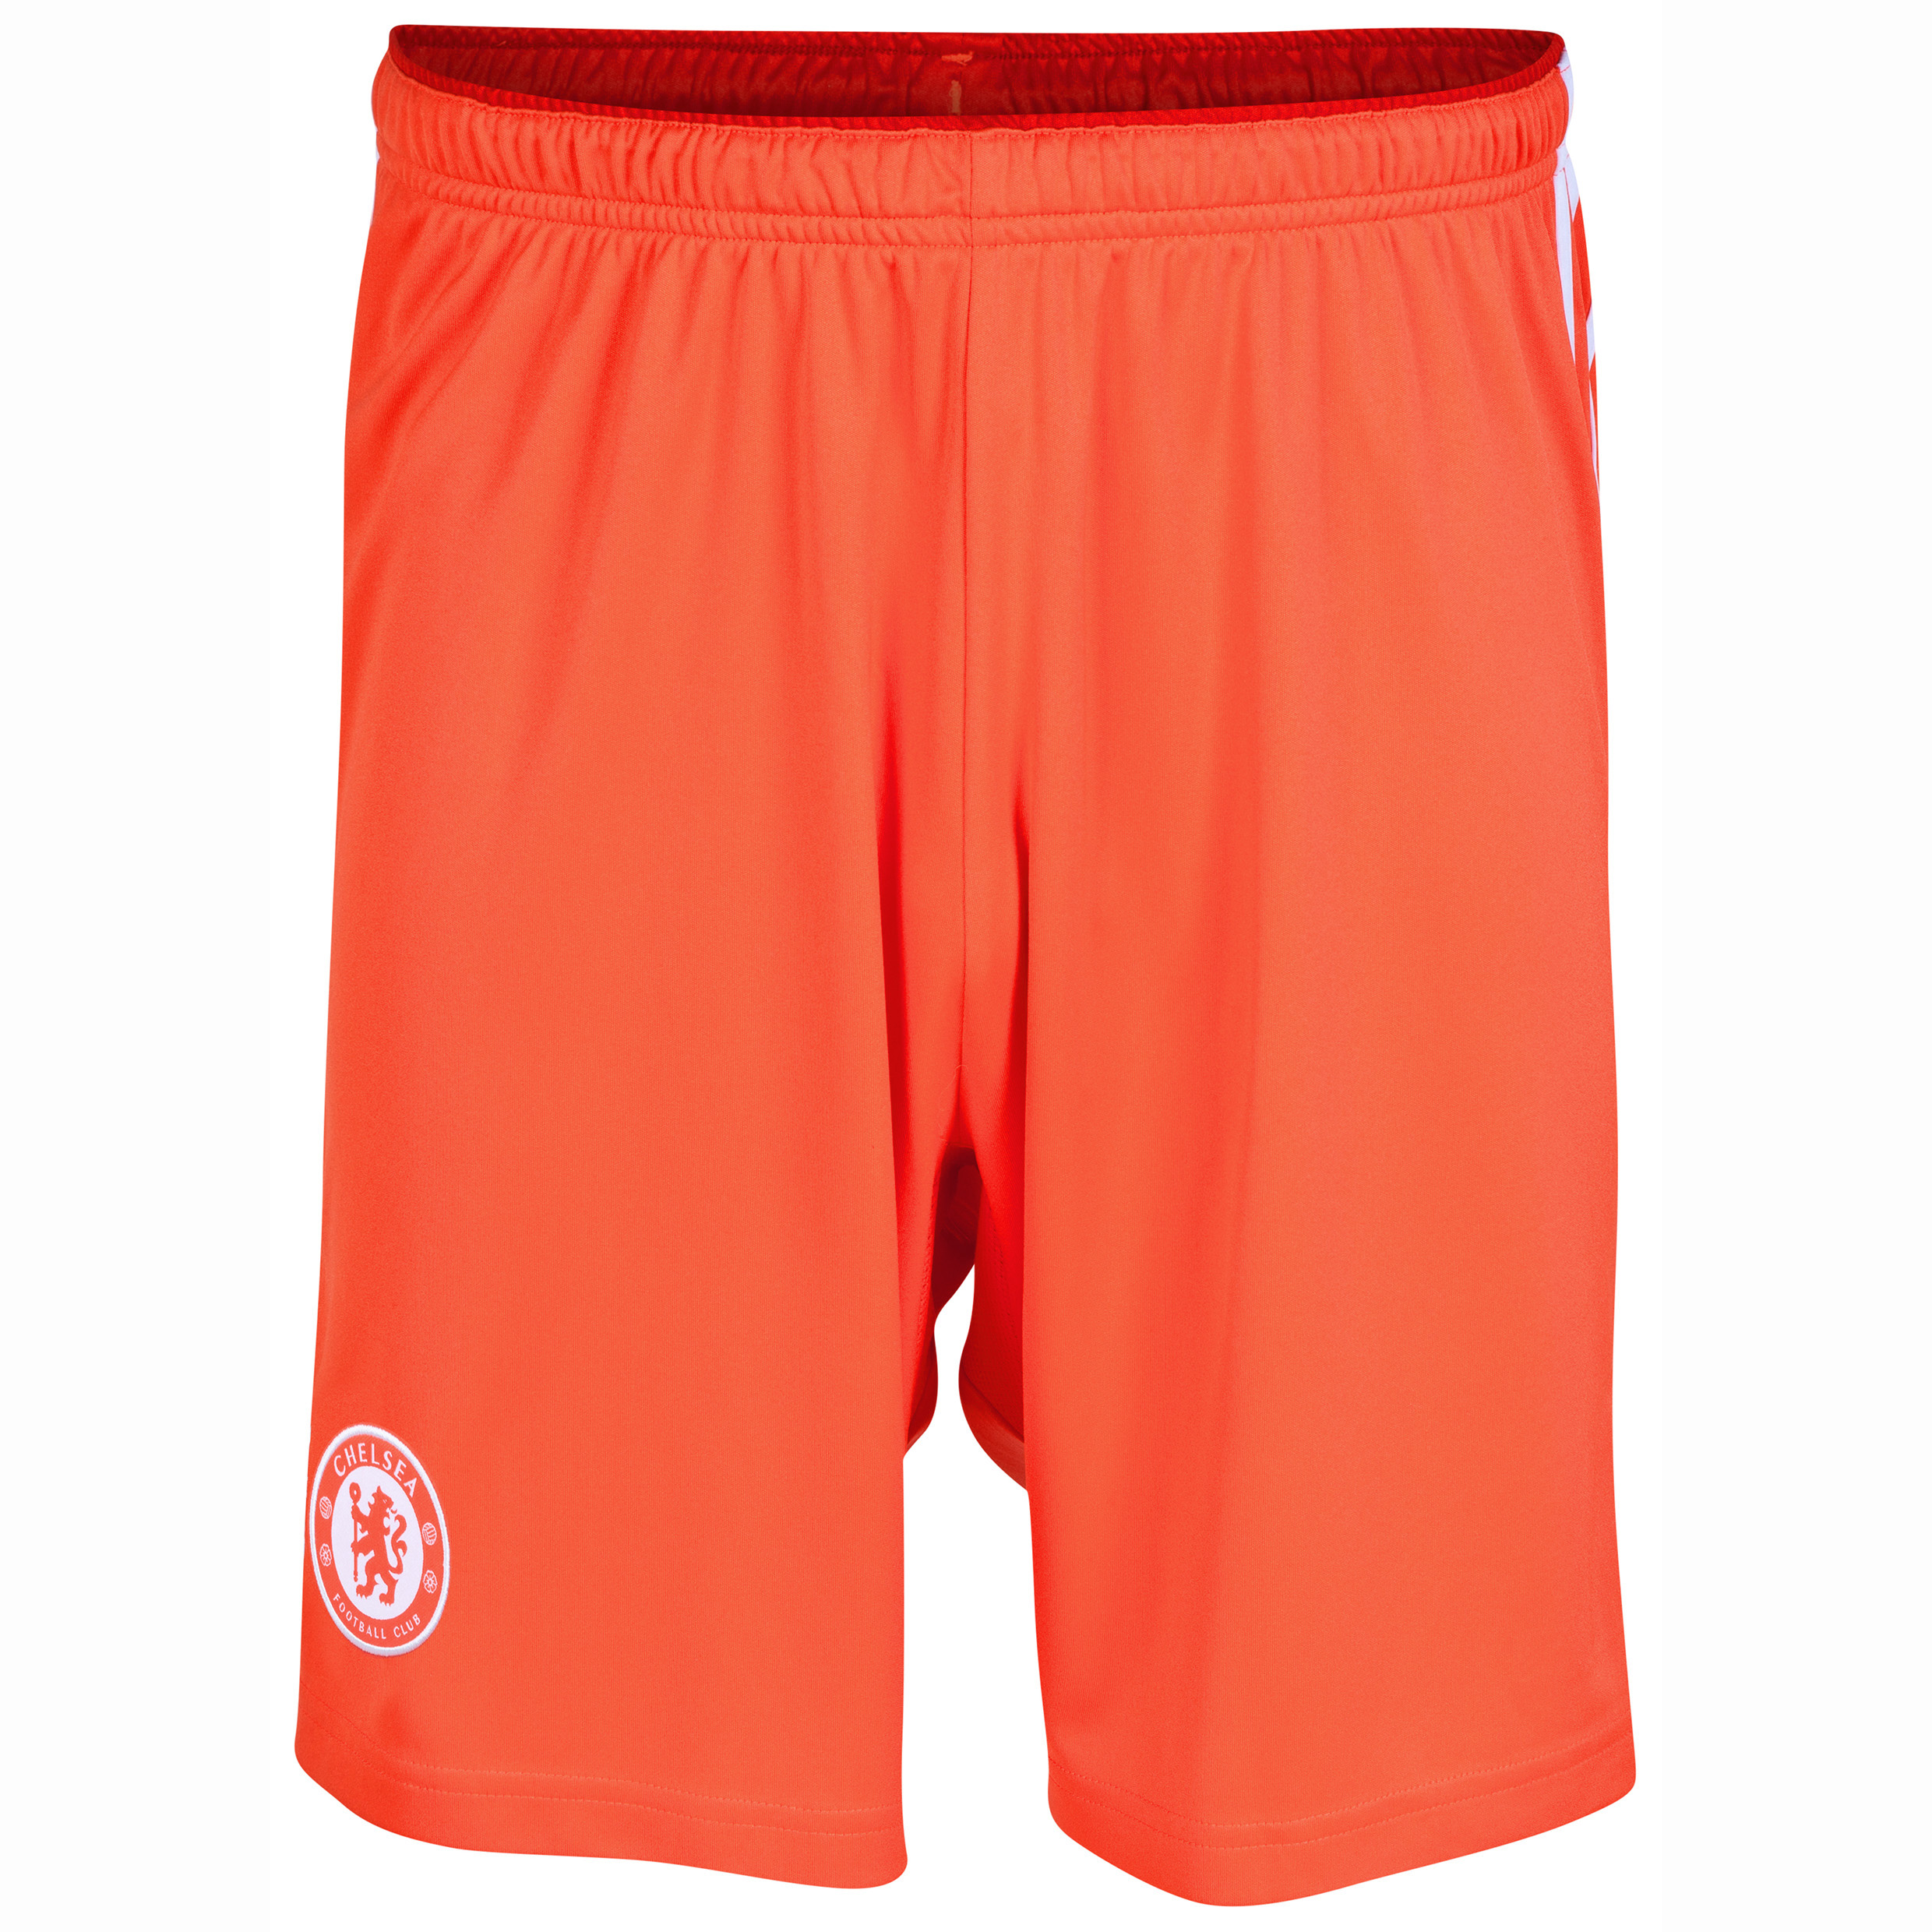 Chelsea Goalkeeper Shorts 2014/15 - Solar Red